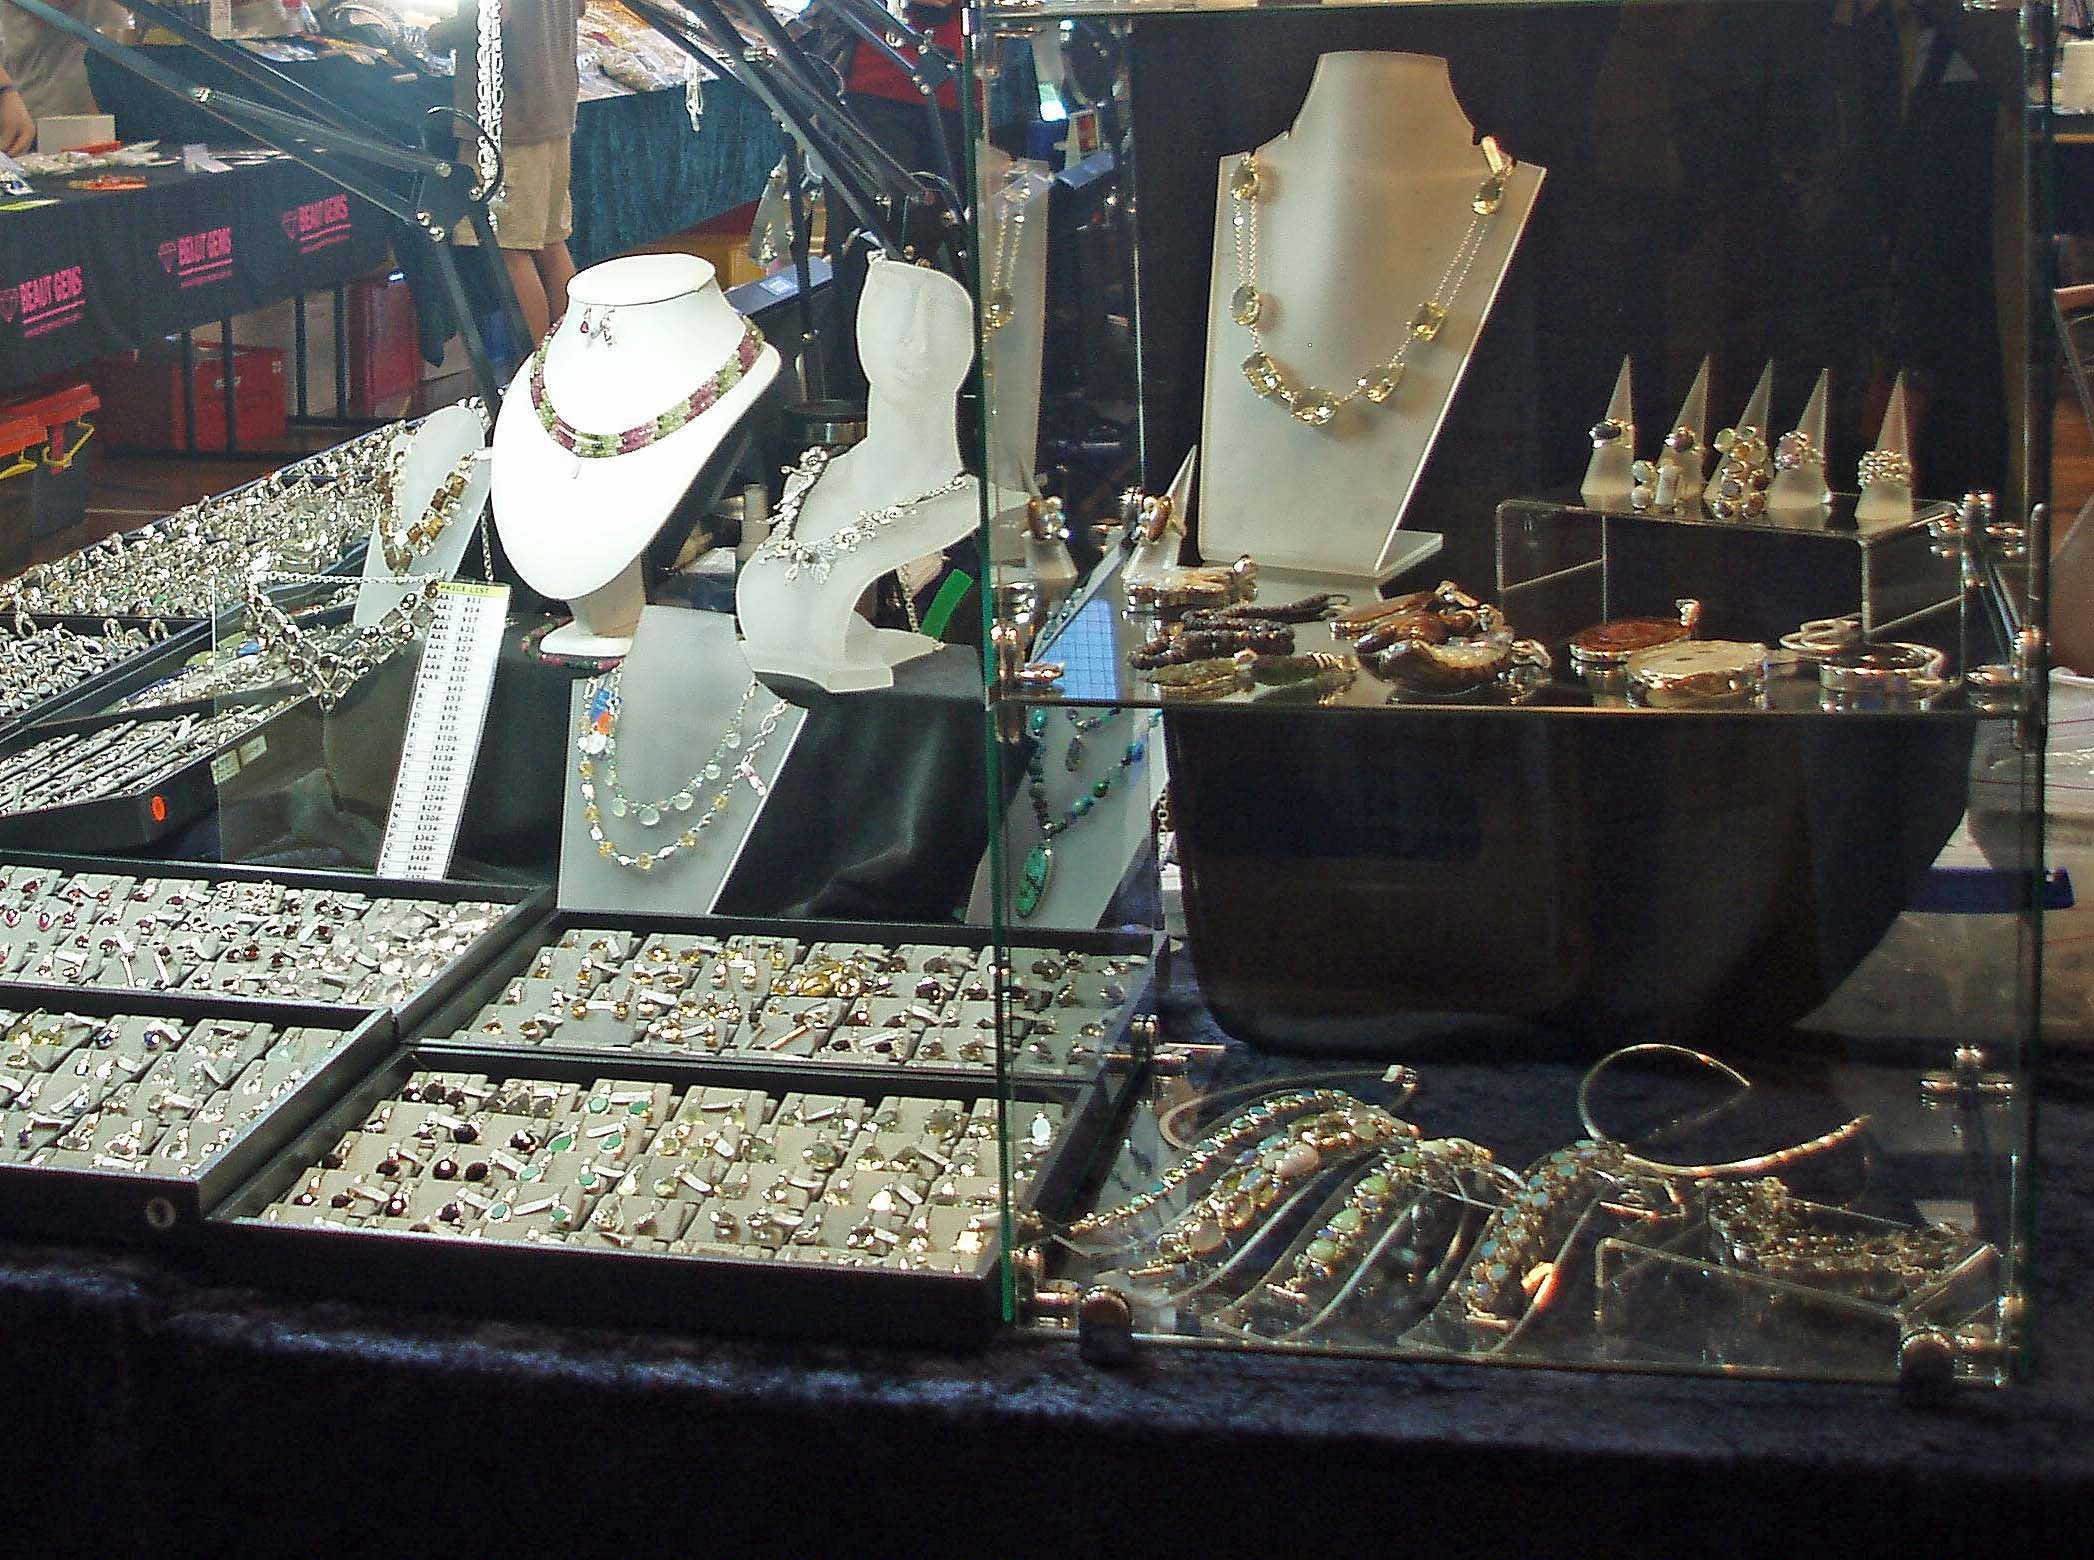 Toowoomba Gemfest - Gems and Jewellery - Pubs and Clubs